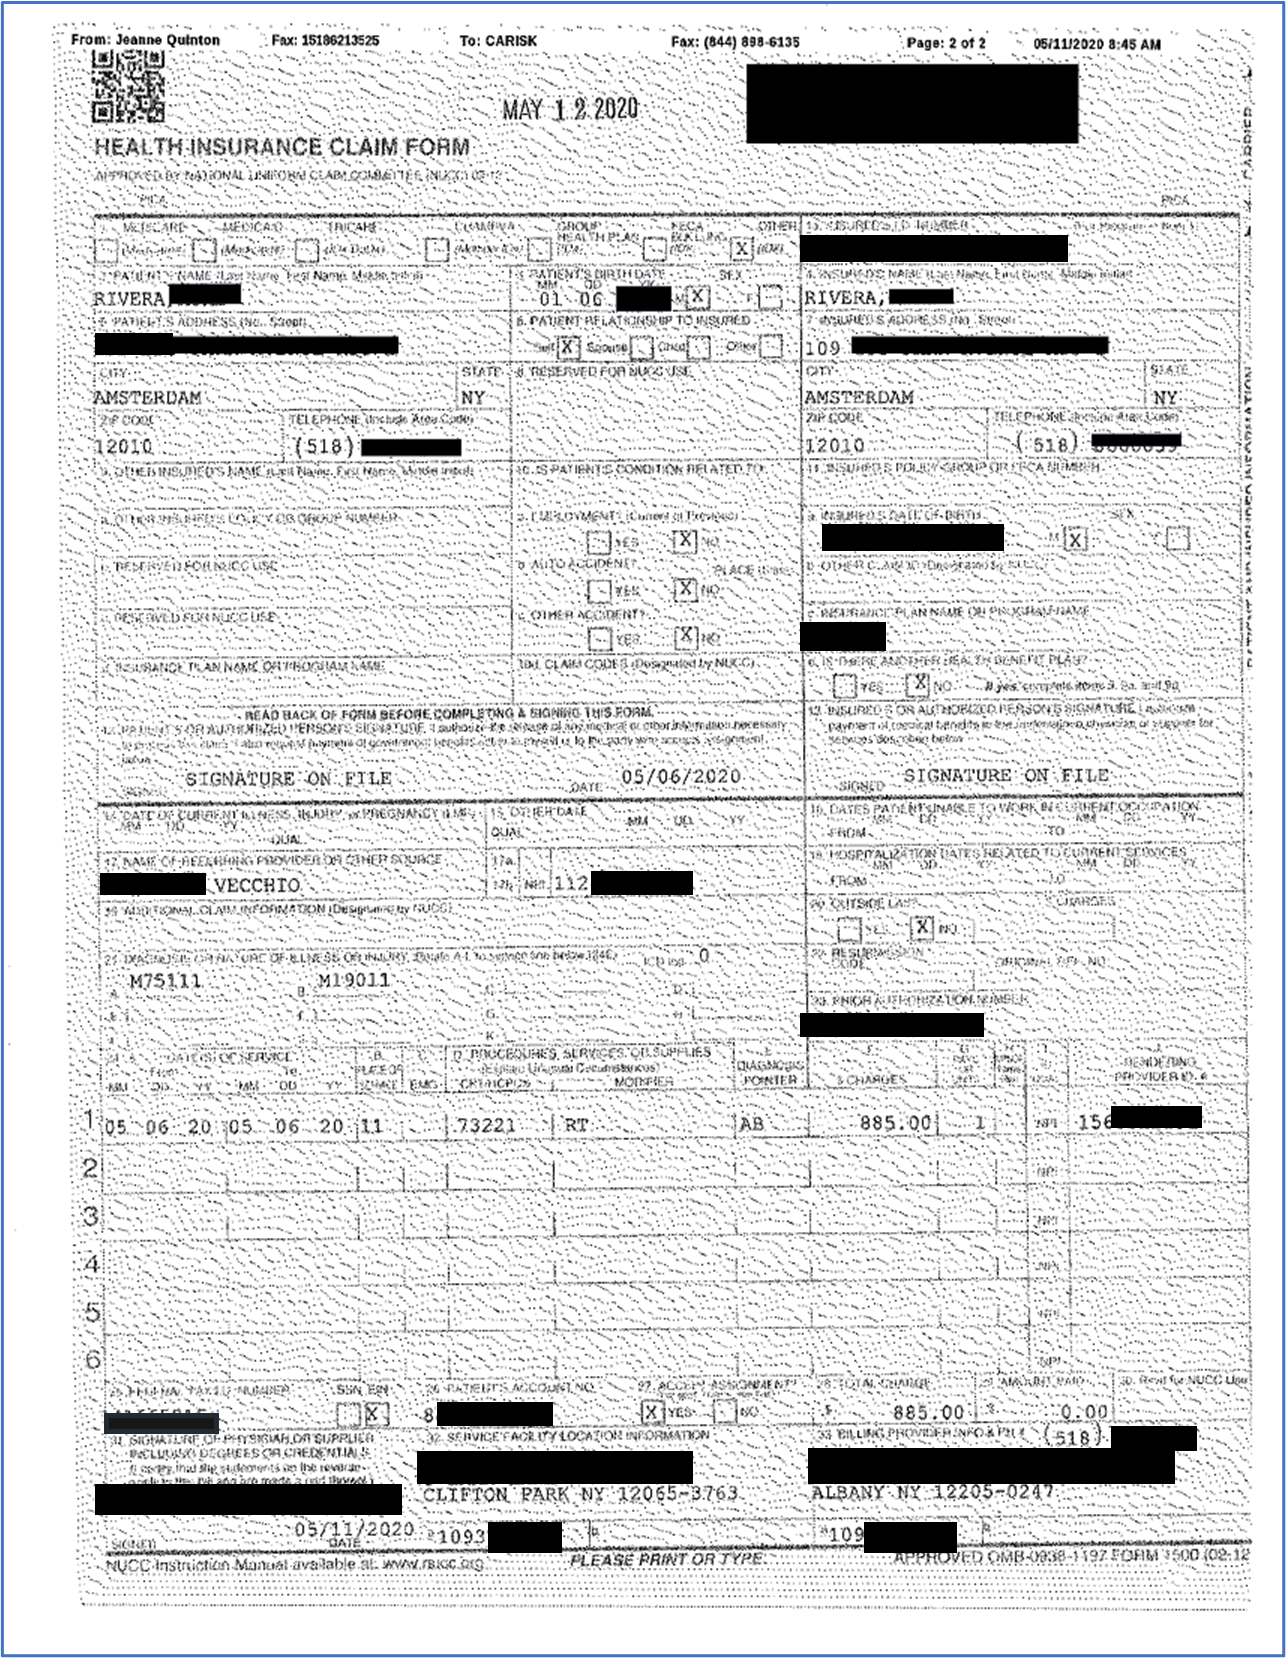 Image of a hard-to-read CMS-1500 form.